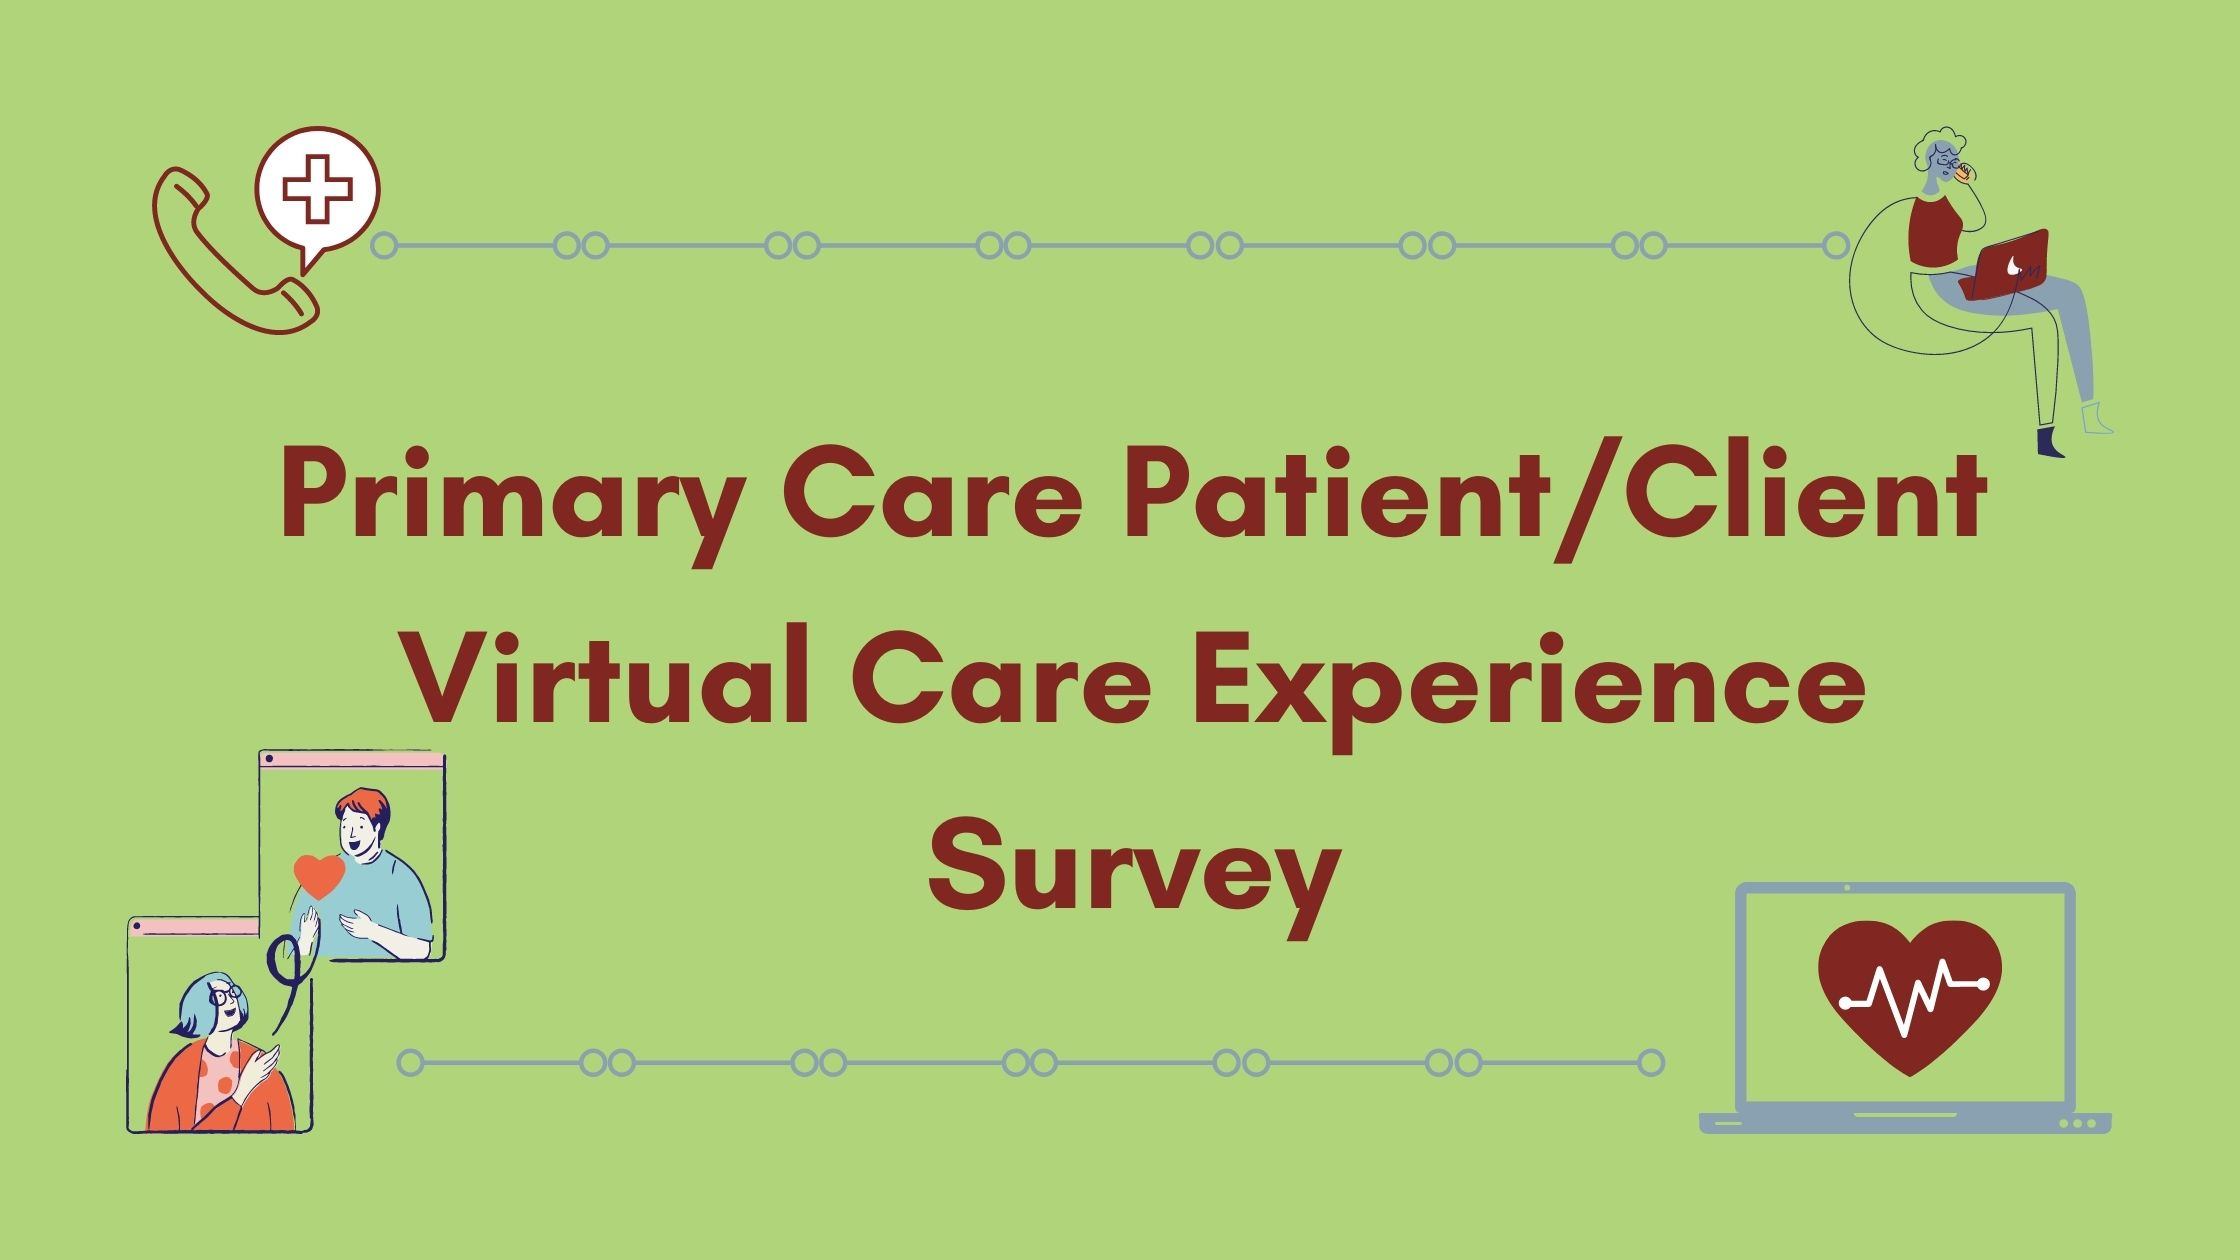 Let's Capture the Patient Experience with Virtual Care!